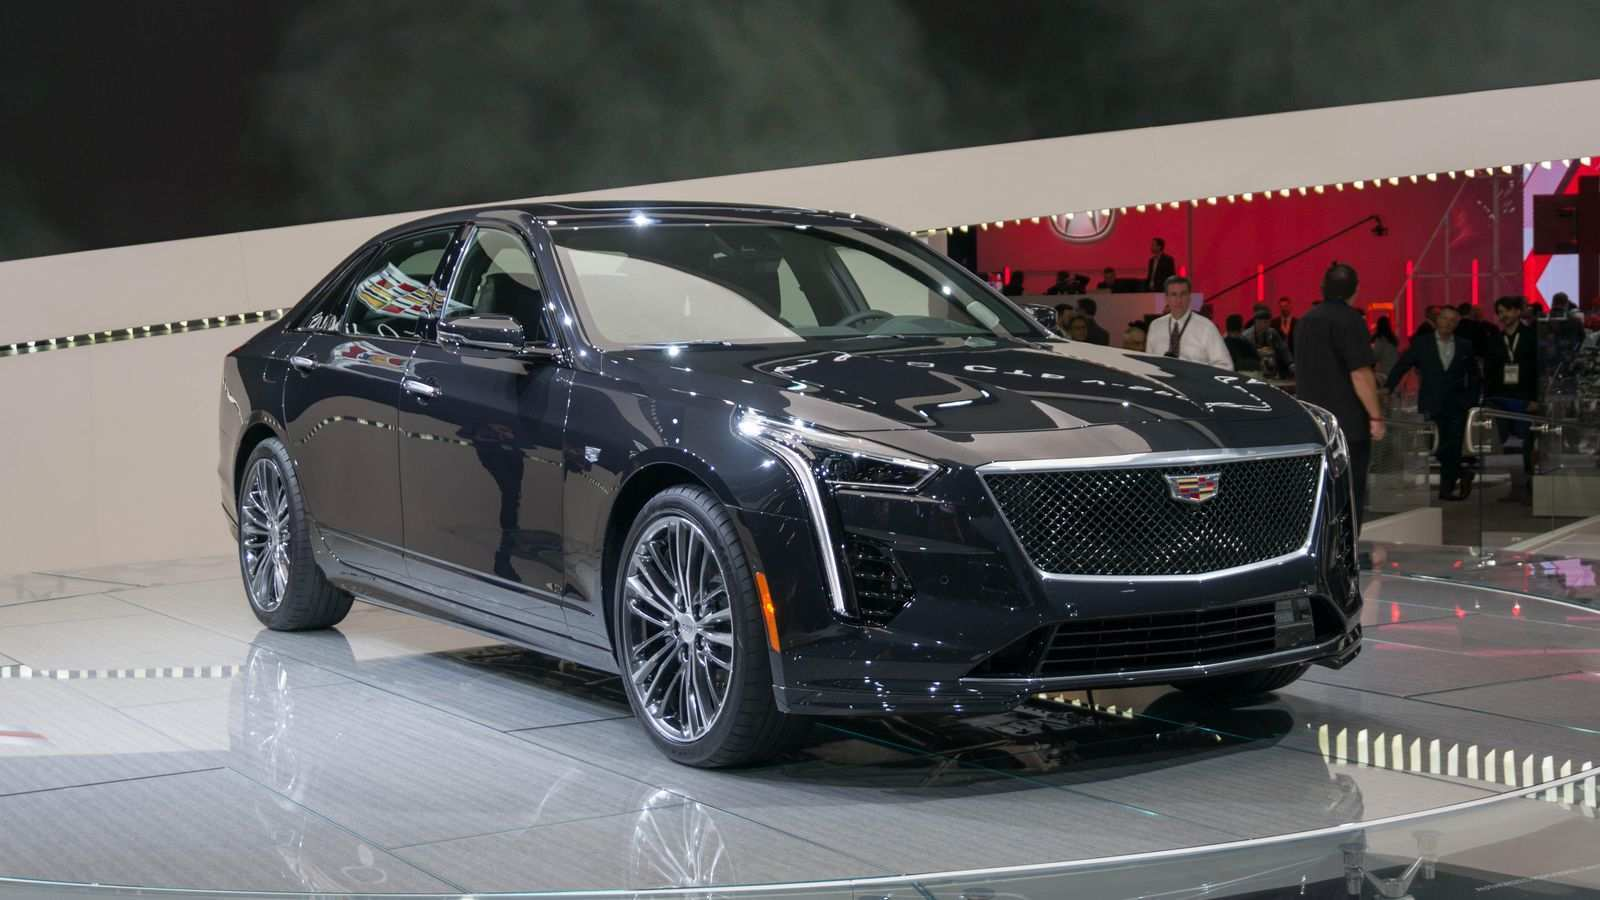 39 The Best 2019 Cadillac Twin Turbo V8 Model